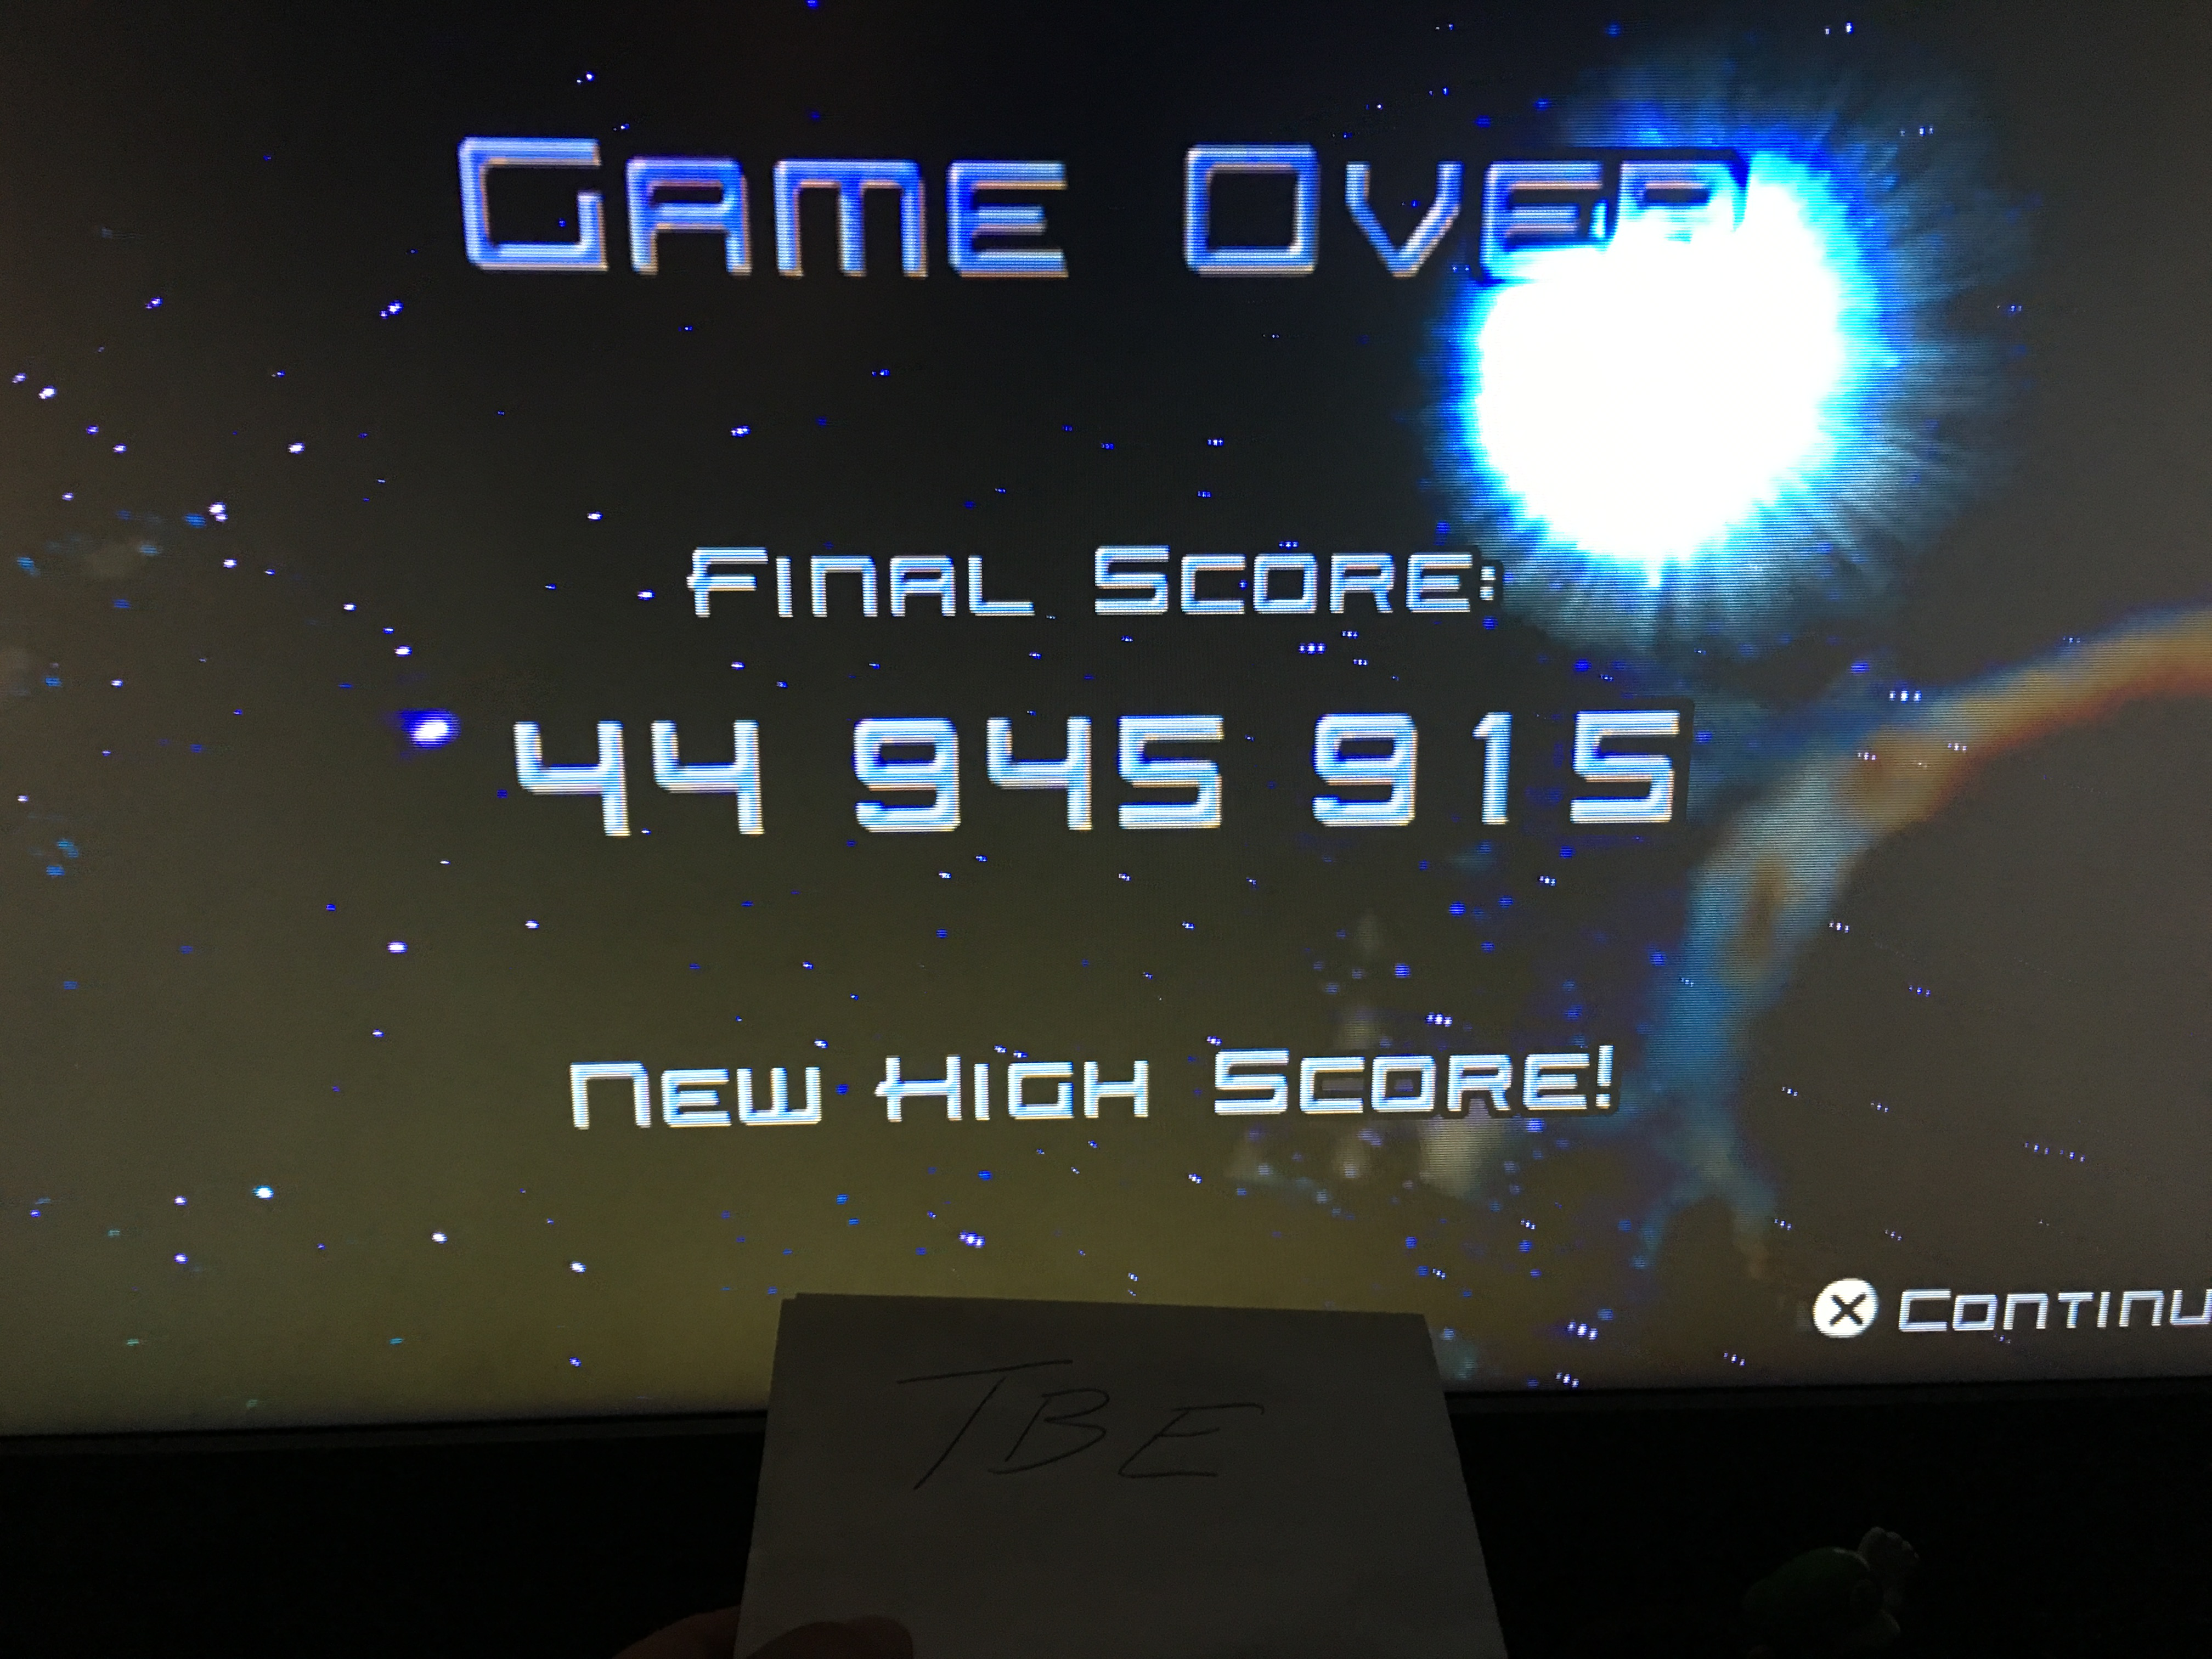 Sixx: Super Stardust Portable: Arcade [Casual] (PSP Emulated) 44,945,915 points on 2016-05-14 02:00:38